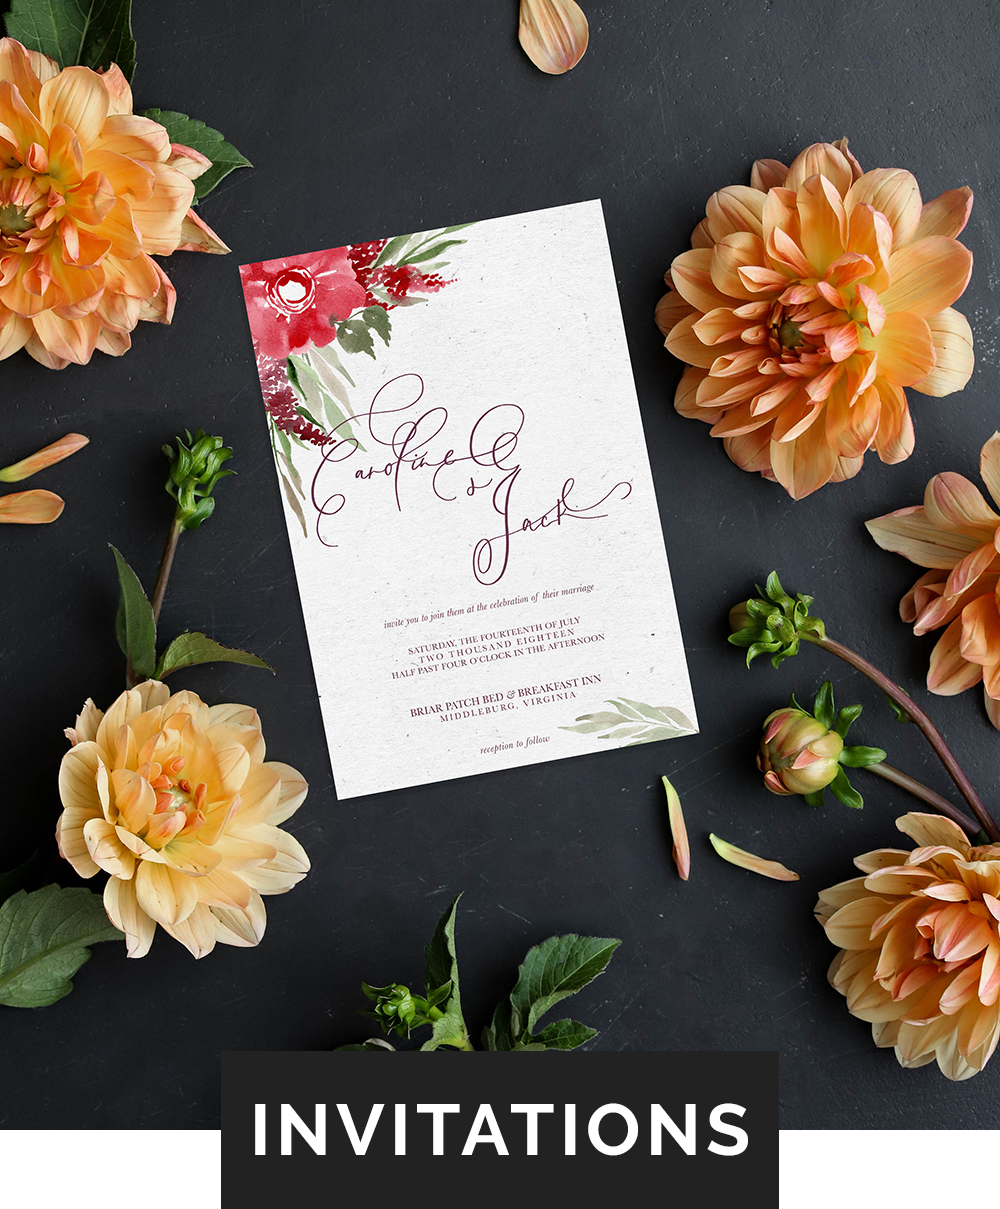 Invitations Template.png